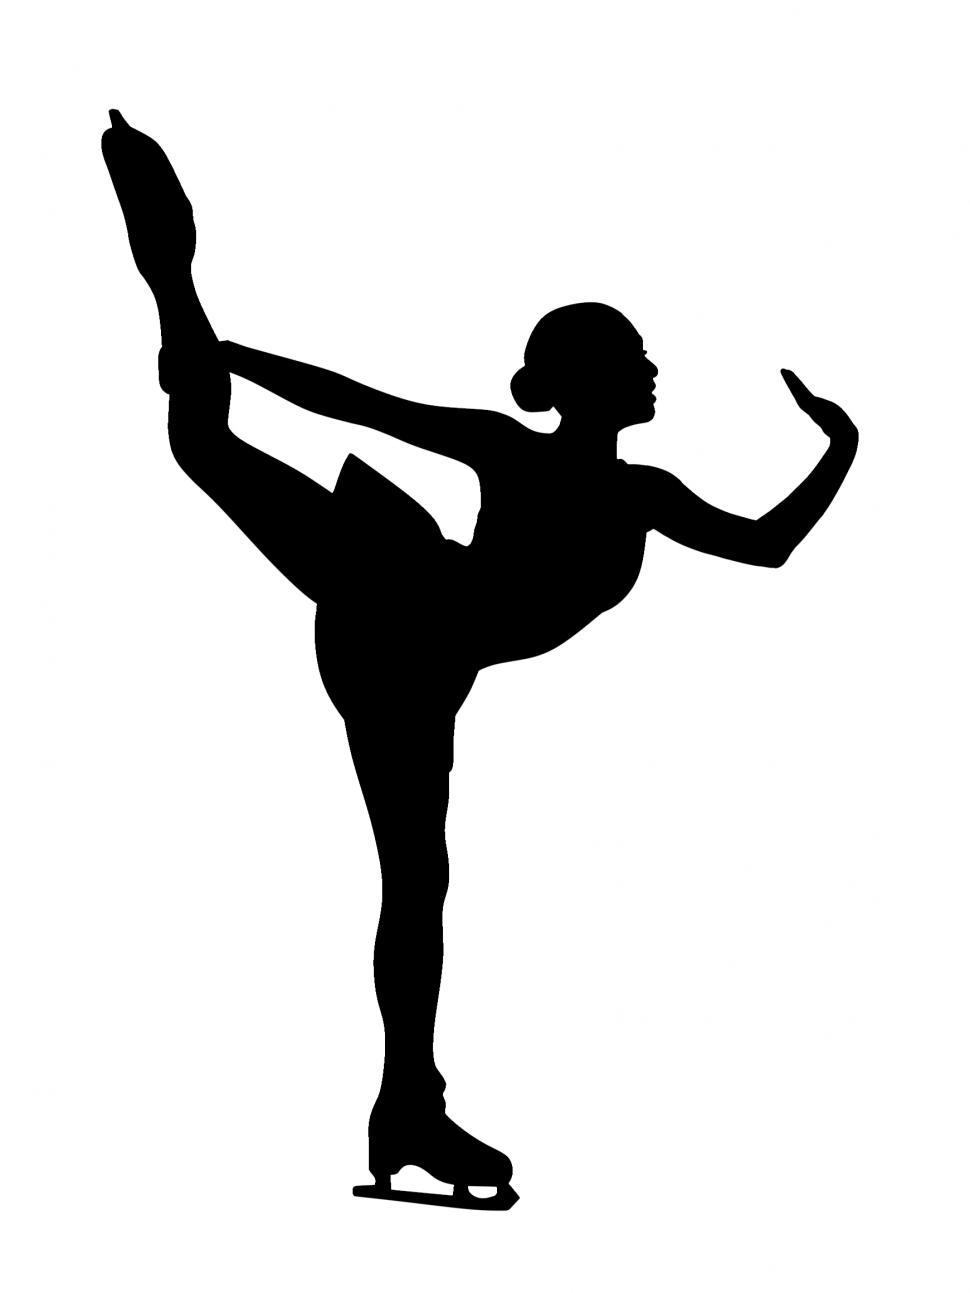 ice skater silhouette ice skaters silhouette at getdrawings free download skater silhouette ice